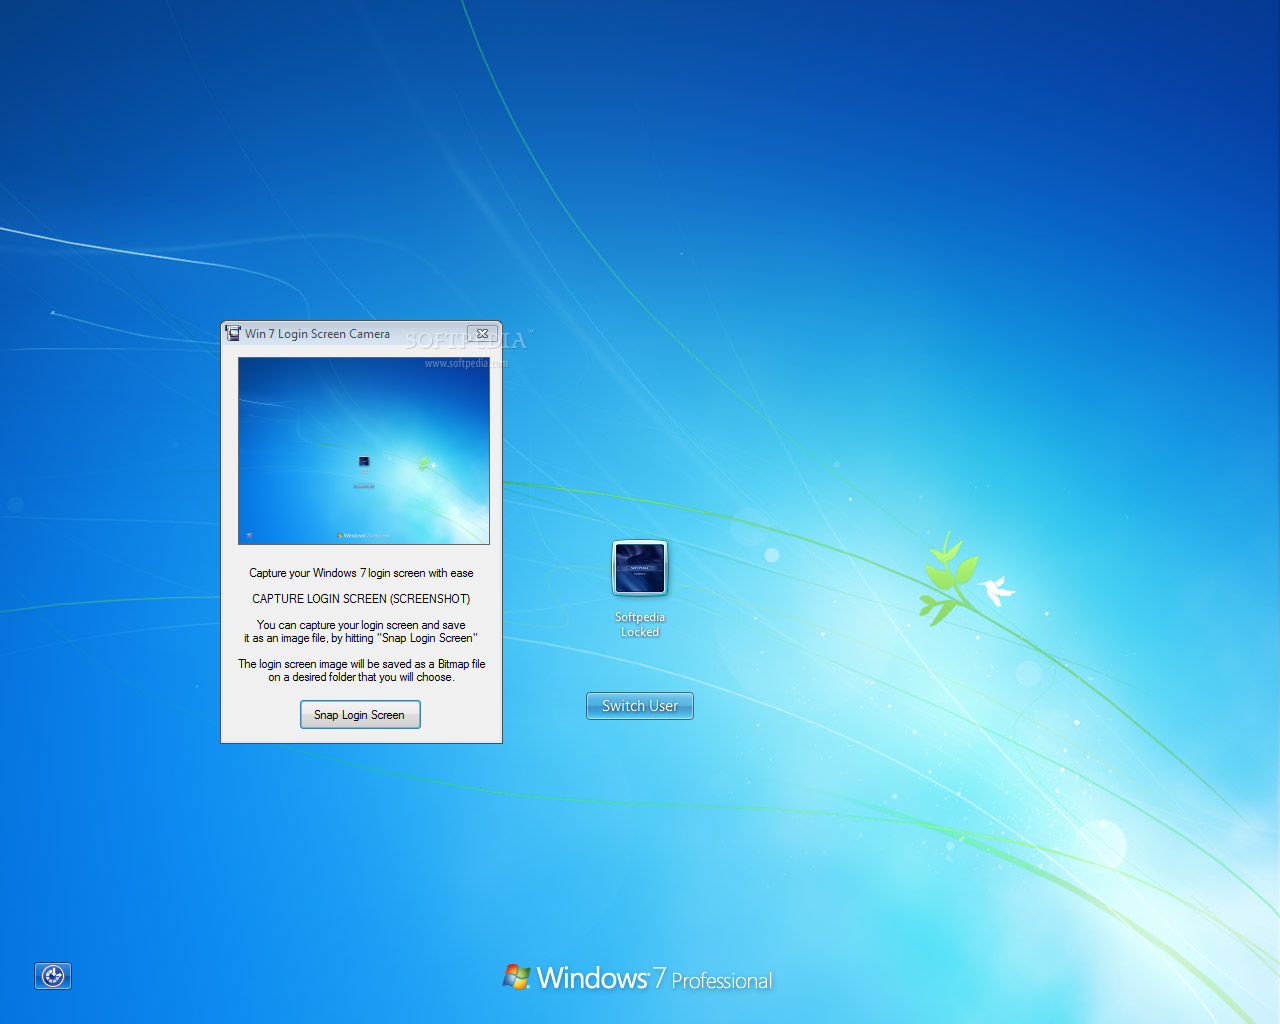 Download Win 7 Login Screen Camera 1 0 0 0